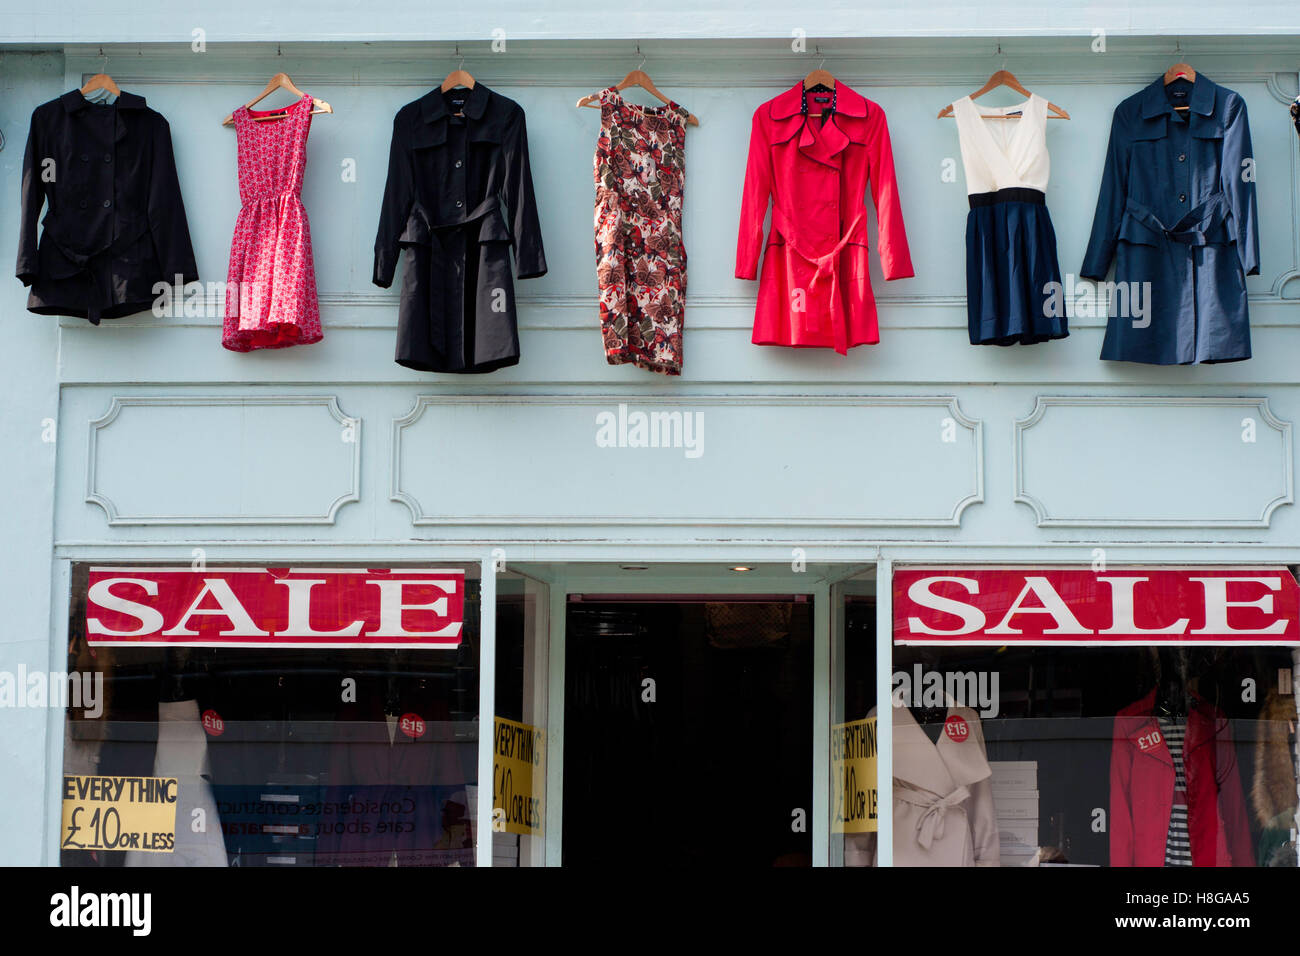 Dresses and waterproof coats on sale in Nothing Hill - Stock Image